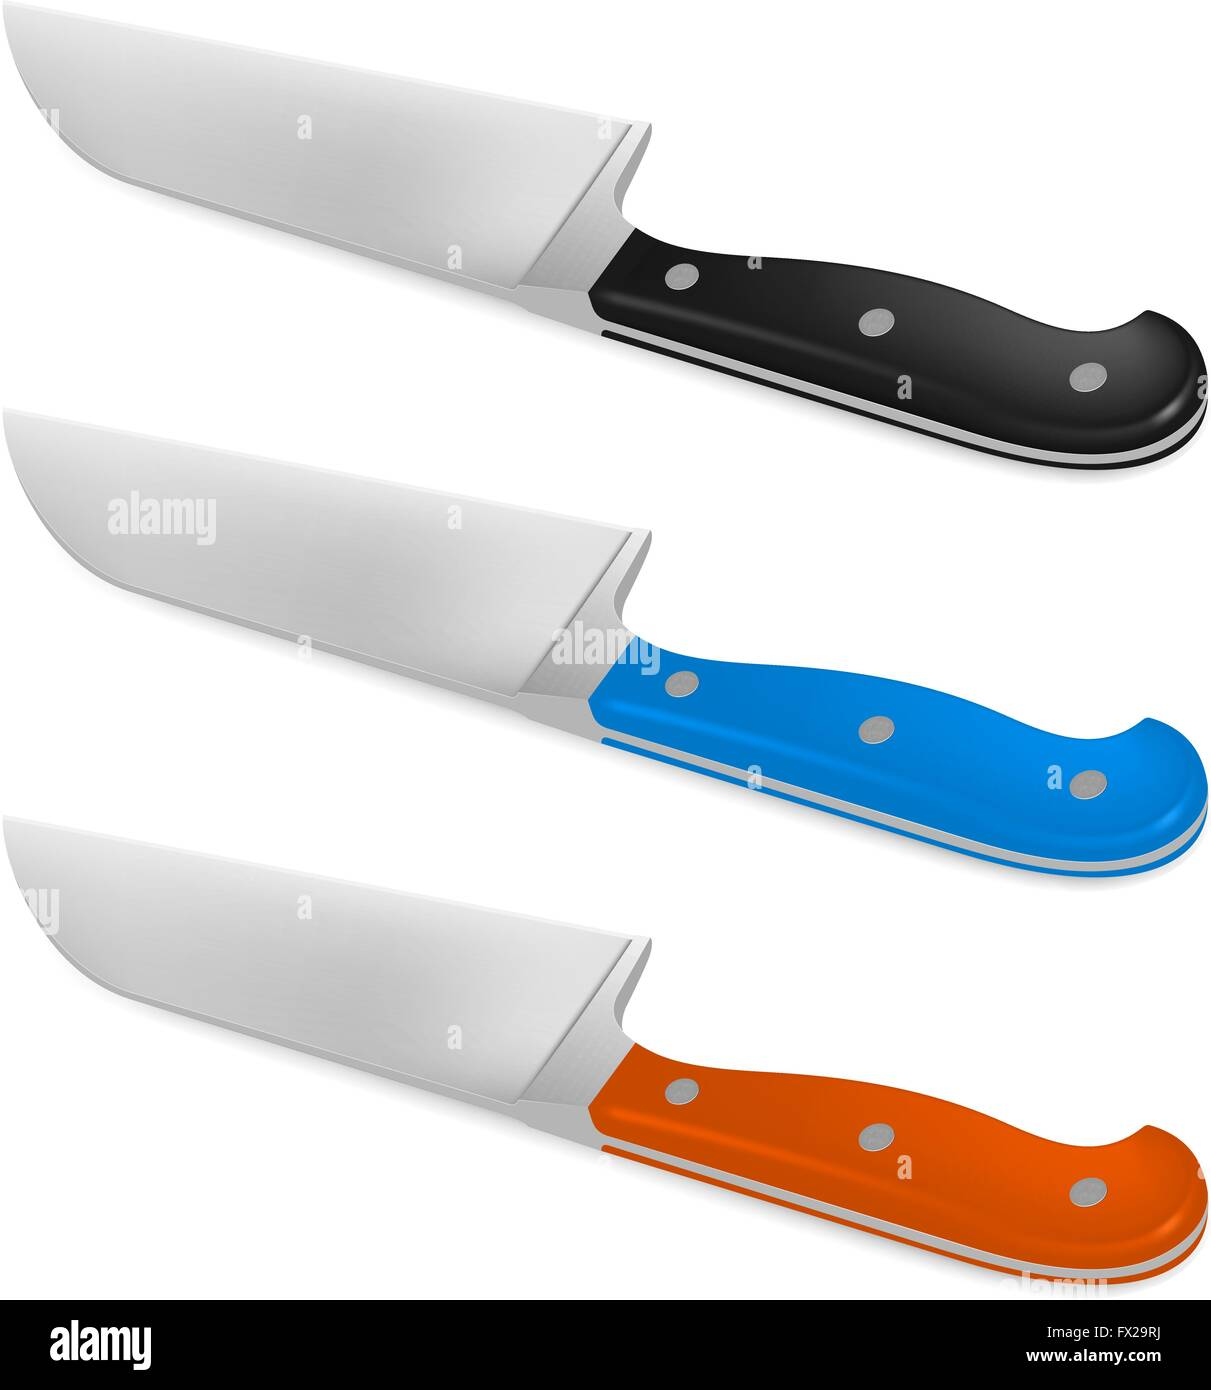 Santoku knife with handle in different color Stock Vector